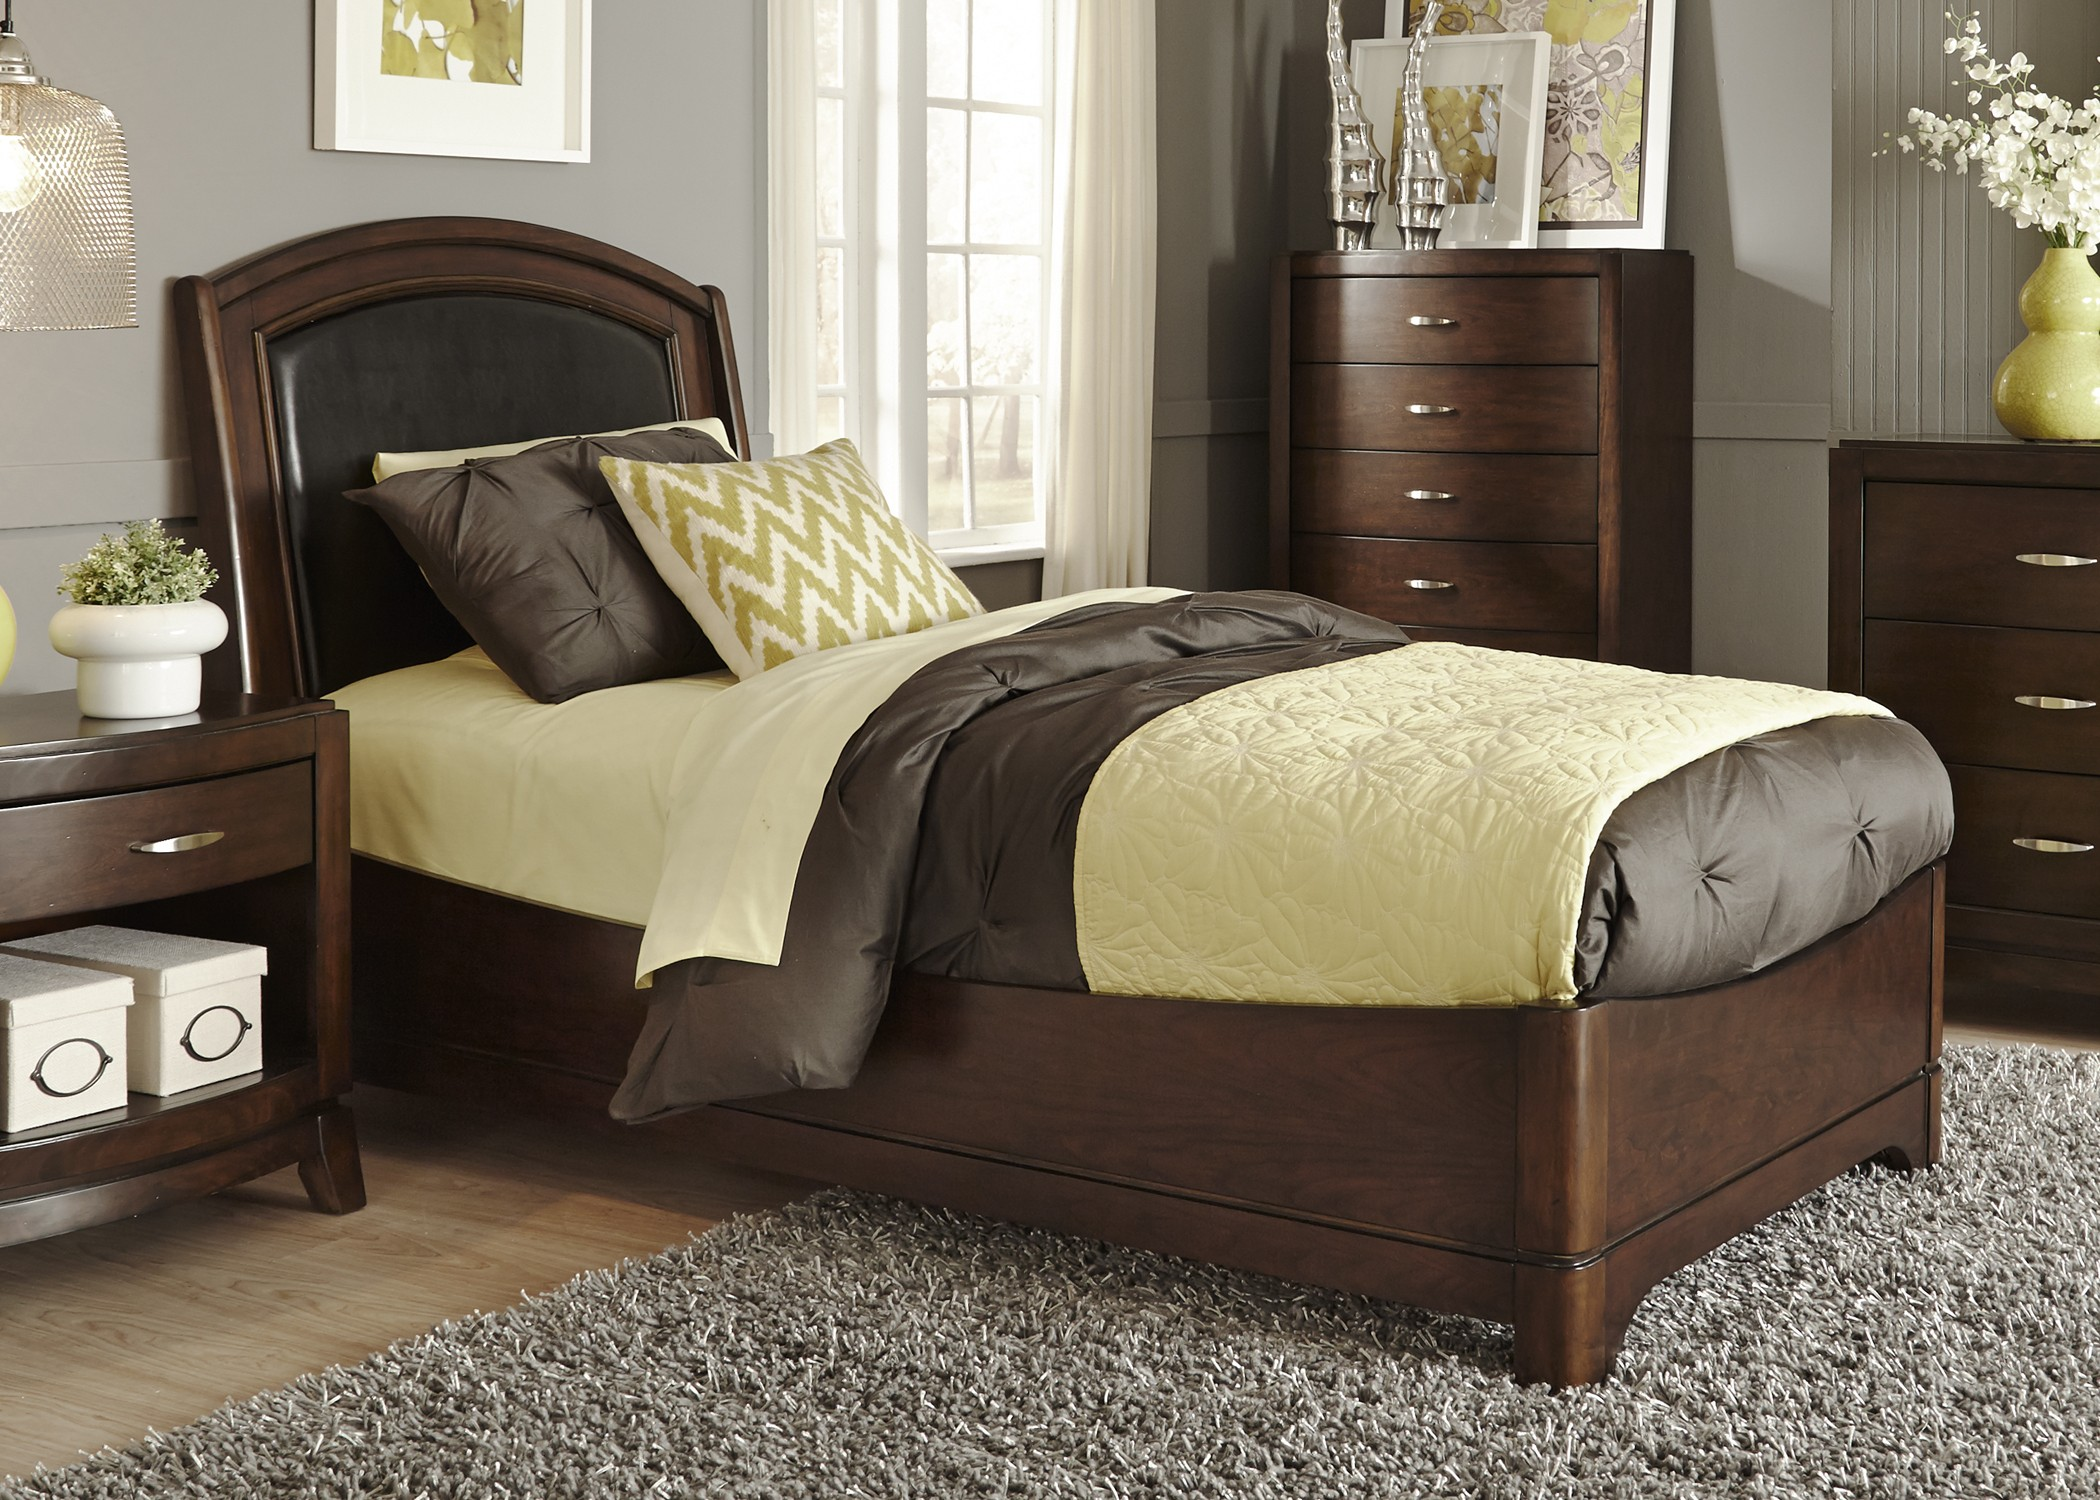 avalon truffle youth leather bedroom set from liberty 505